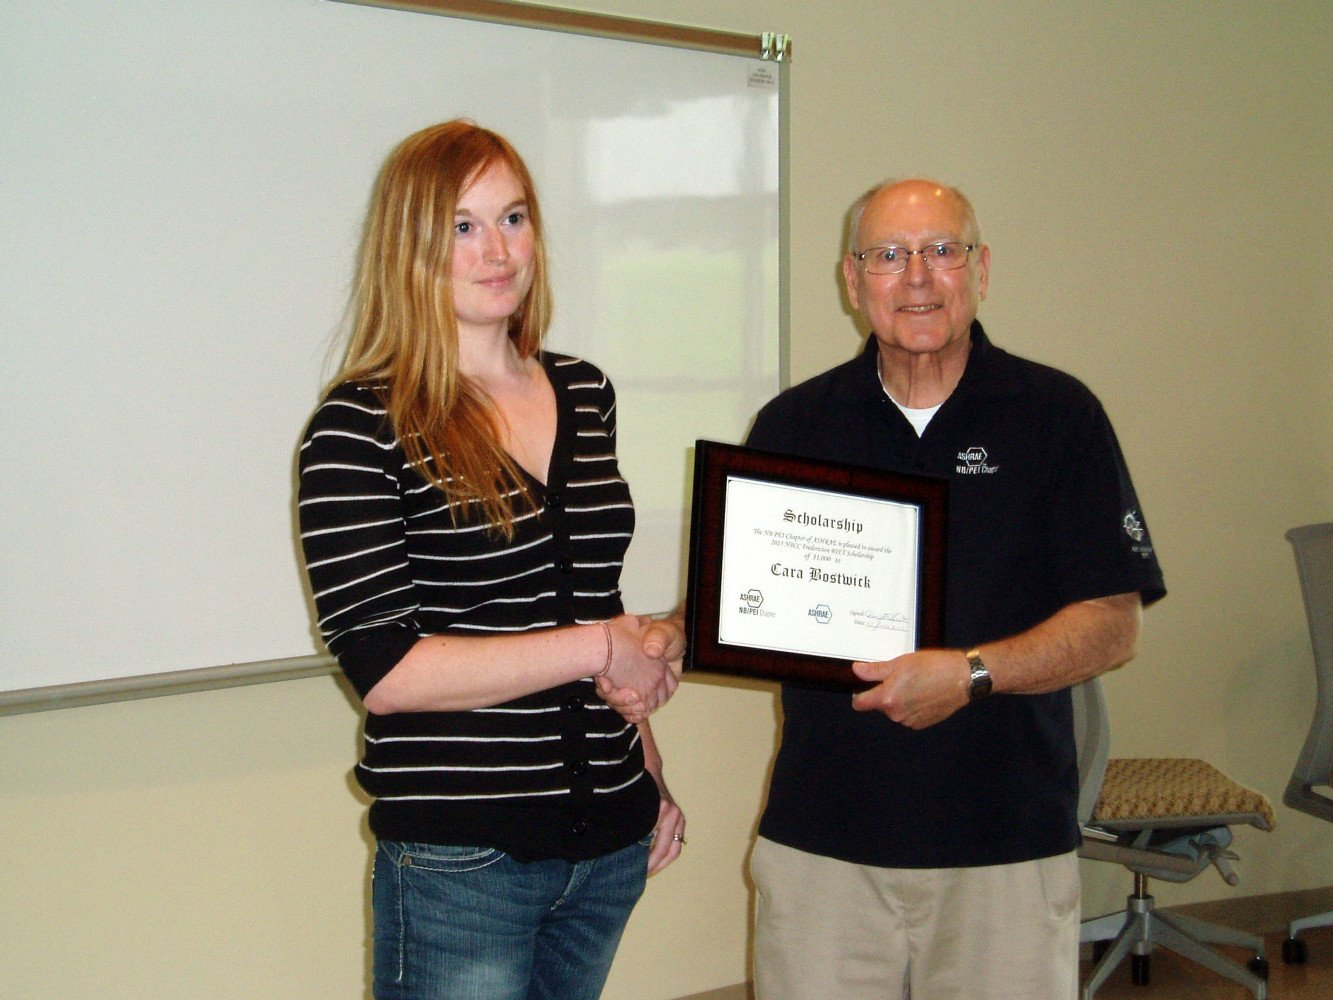 Dwight Scott presents Cara Bostwick of NBCC Fredericton a $1000 ASHRAE Scholarship from the NB/PEI Chapter.